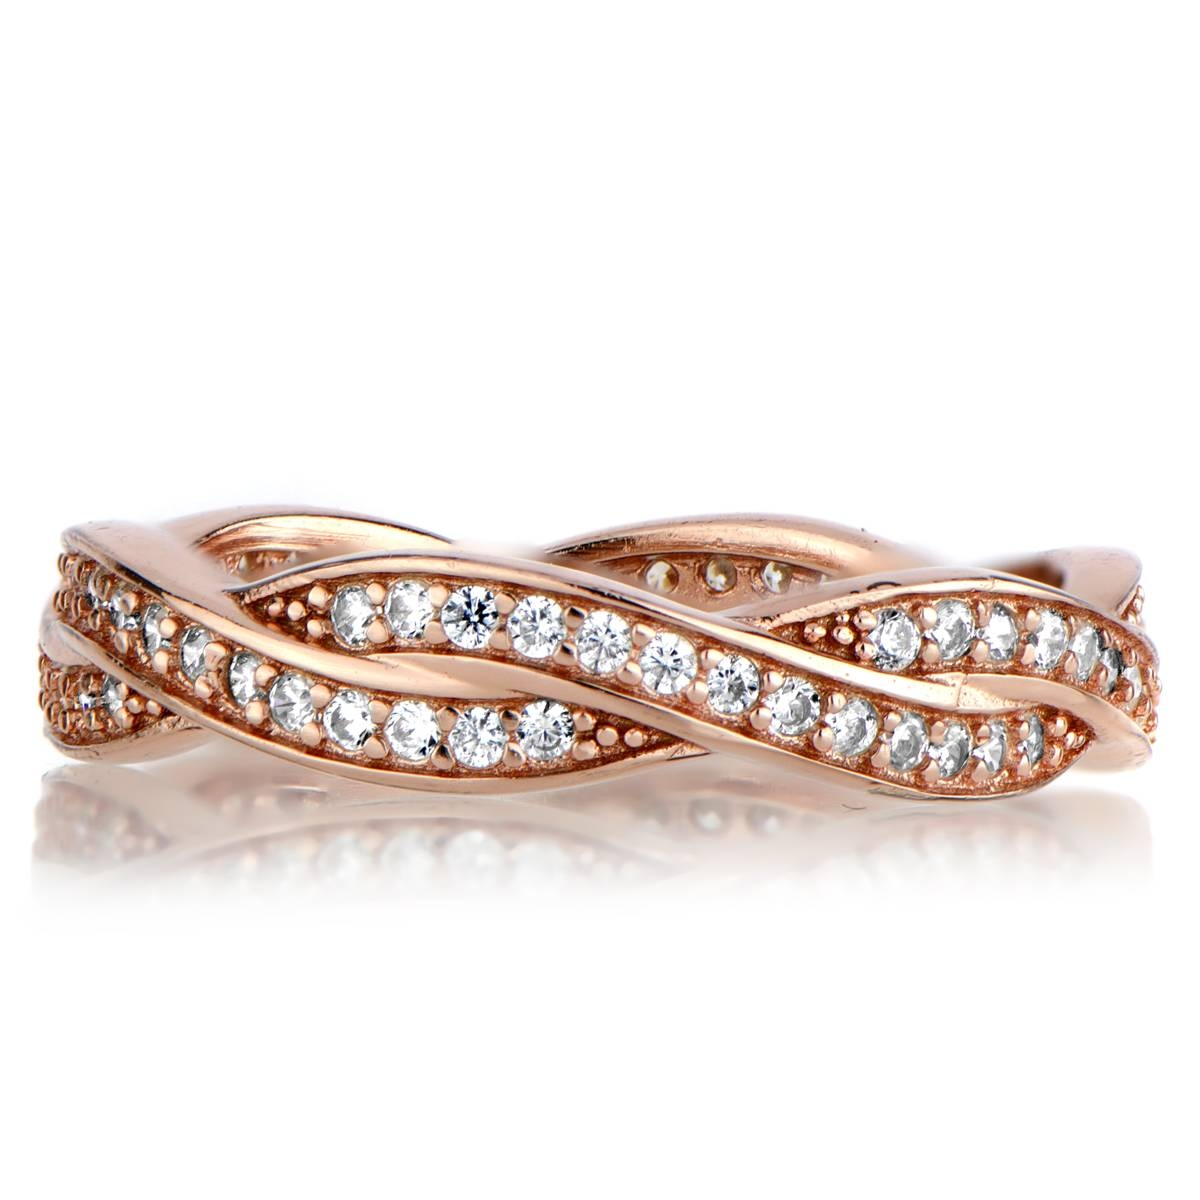 band cut round claudiaband infinity in twisted wedding ring rose diamond r p gold anniversary white